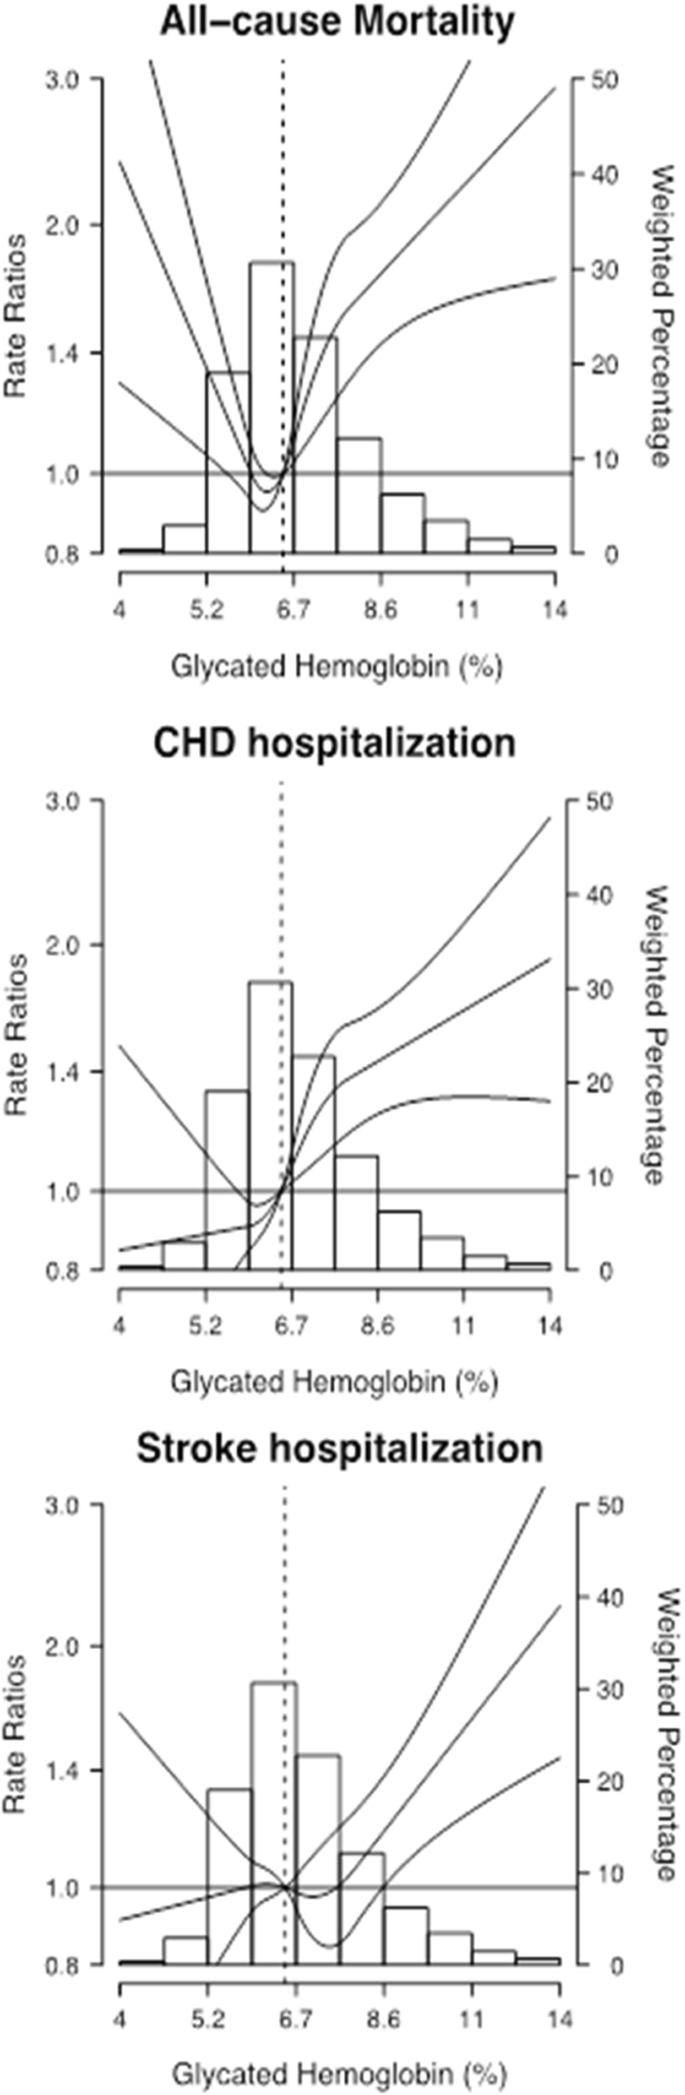 Mortality and cardiovascular disease burden of uncontrolled